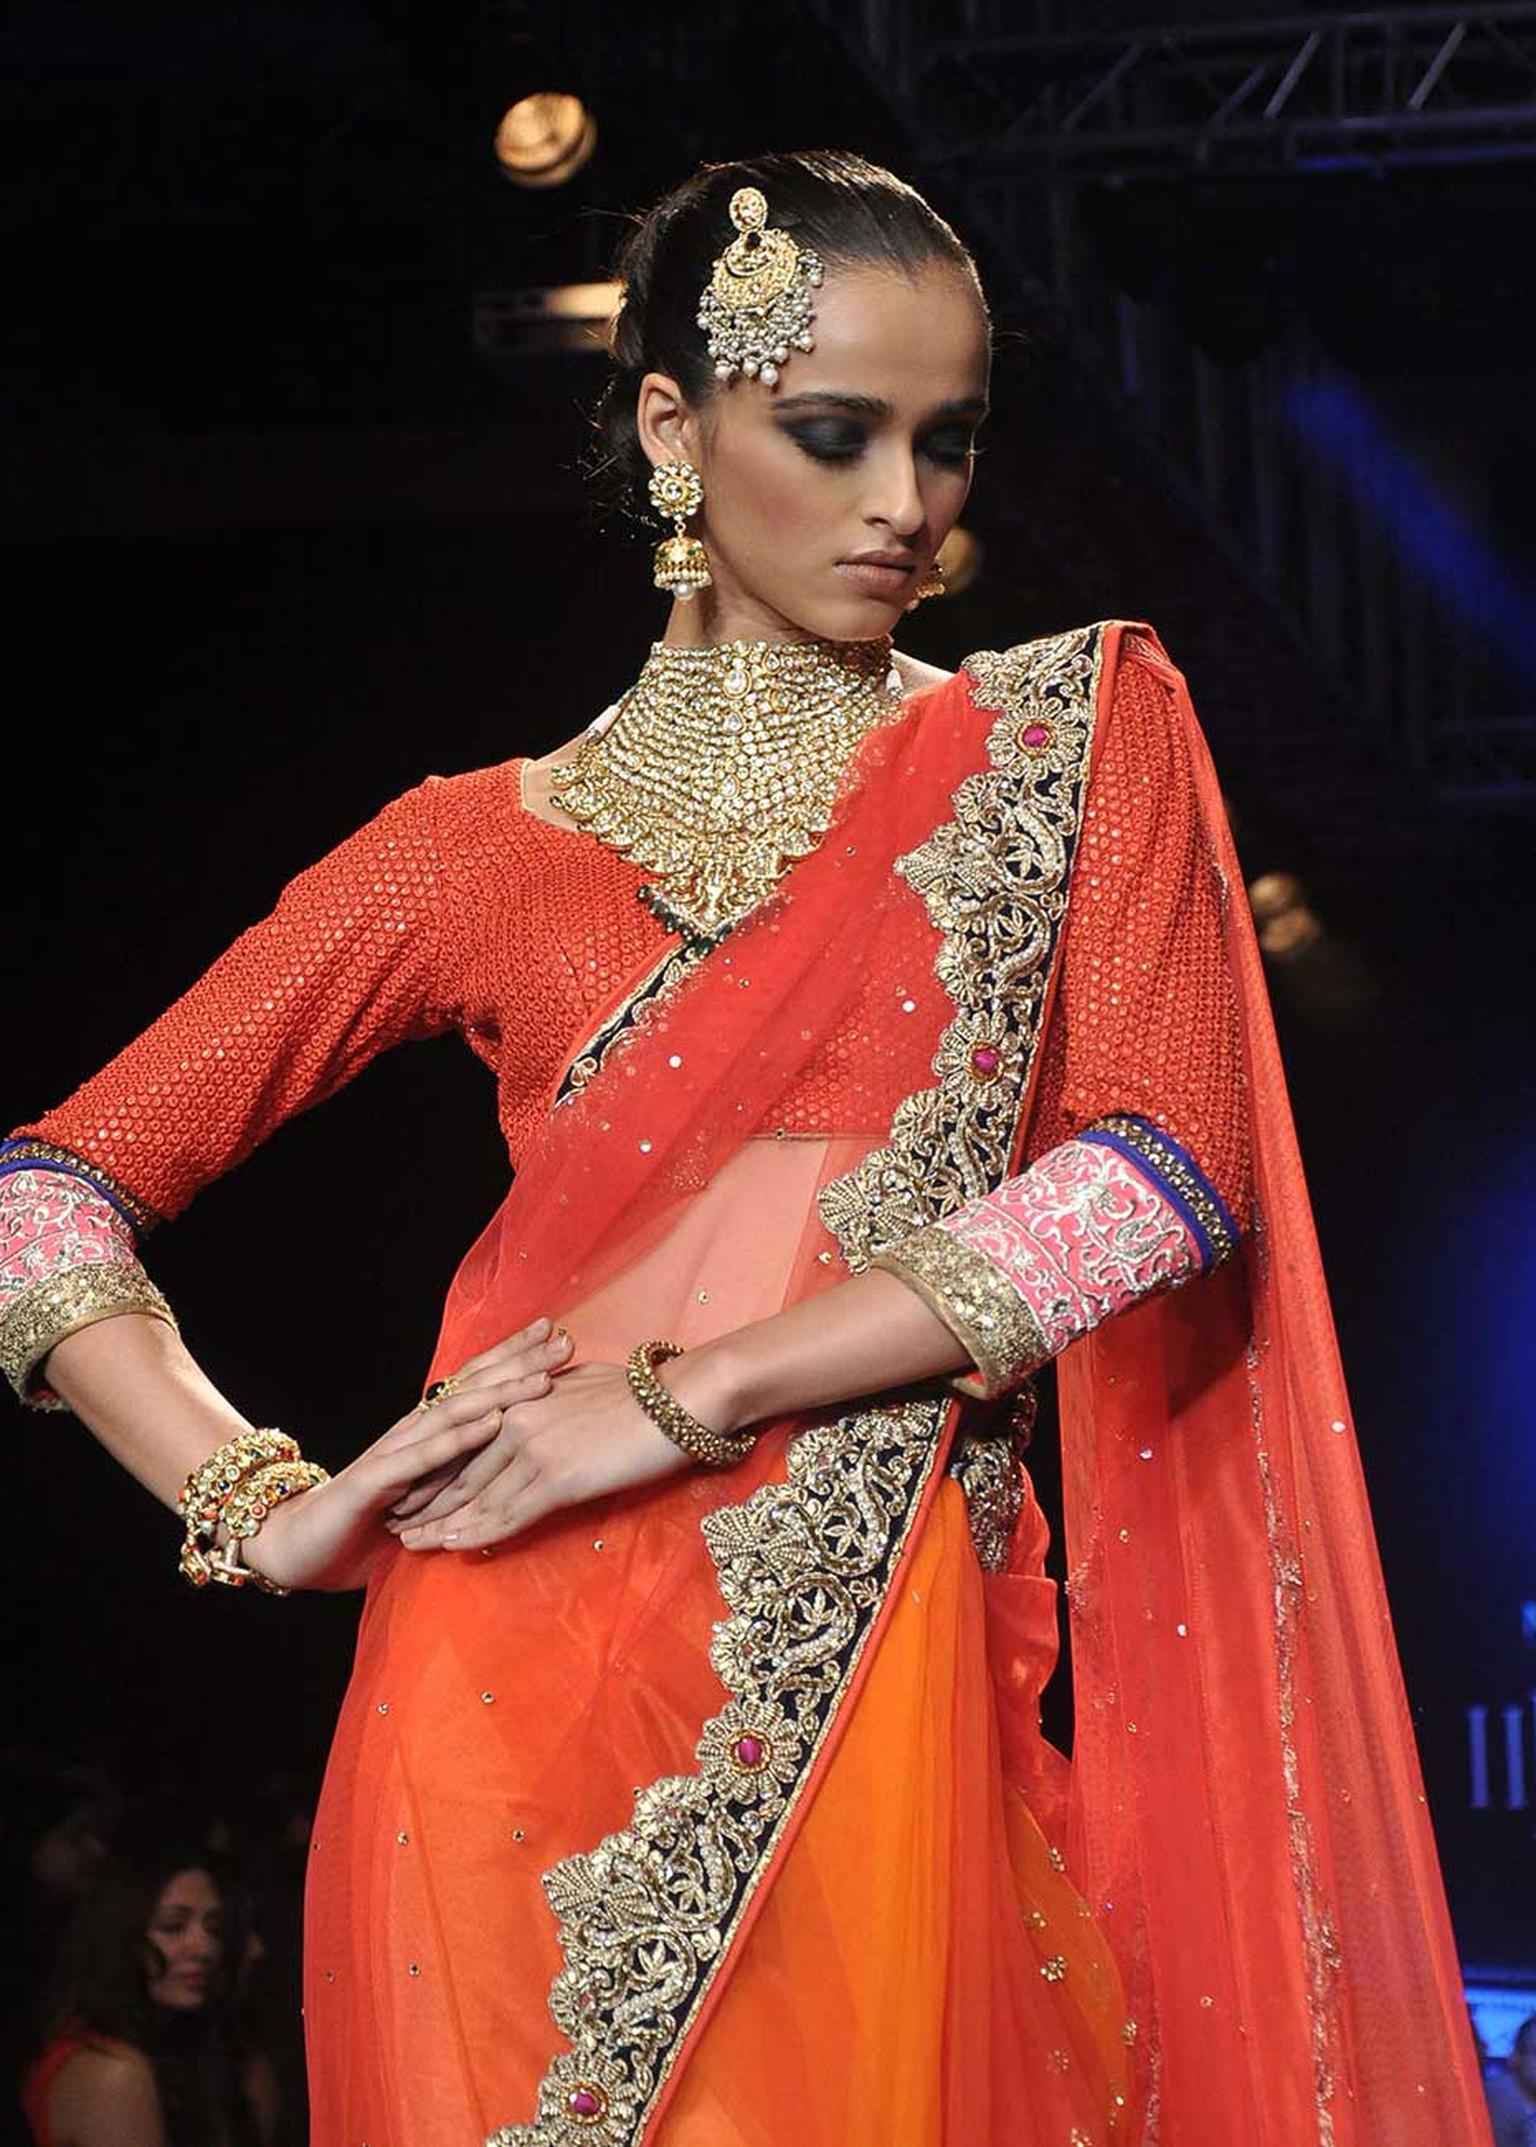 A model showcasing Vijay Golecha's latest collection at International India Jewellery Week 2014.